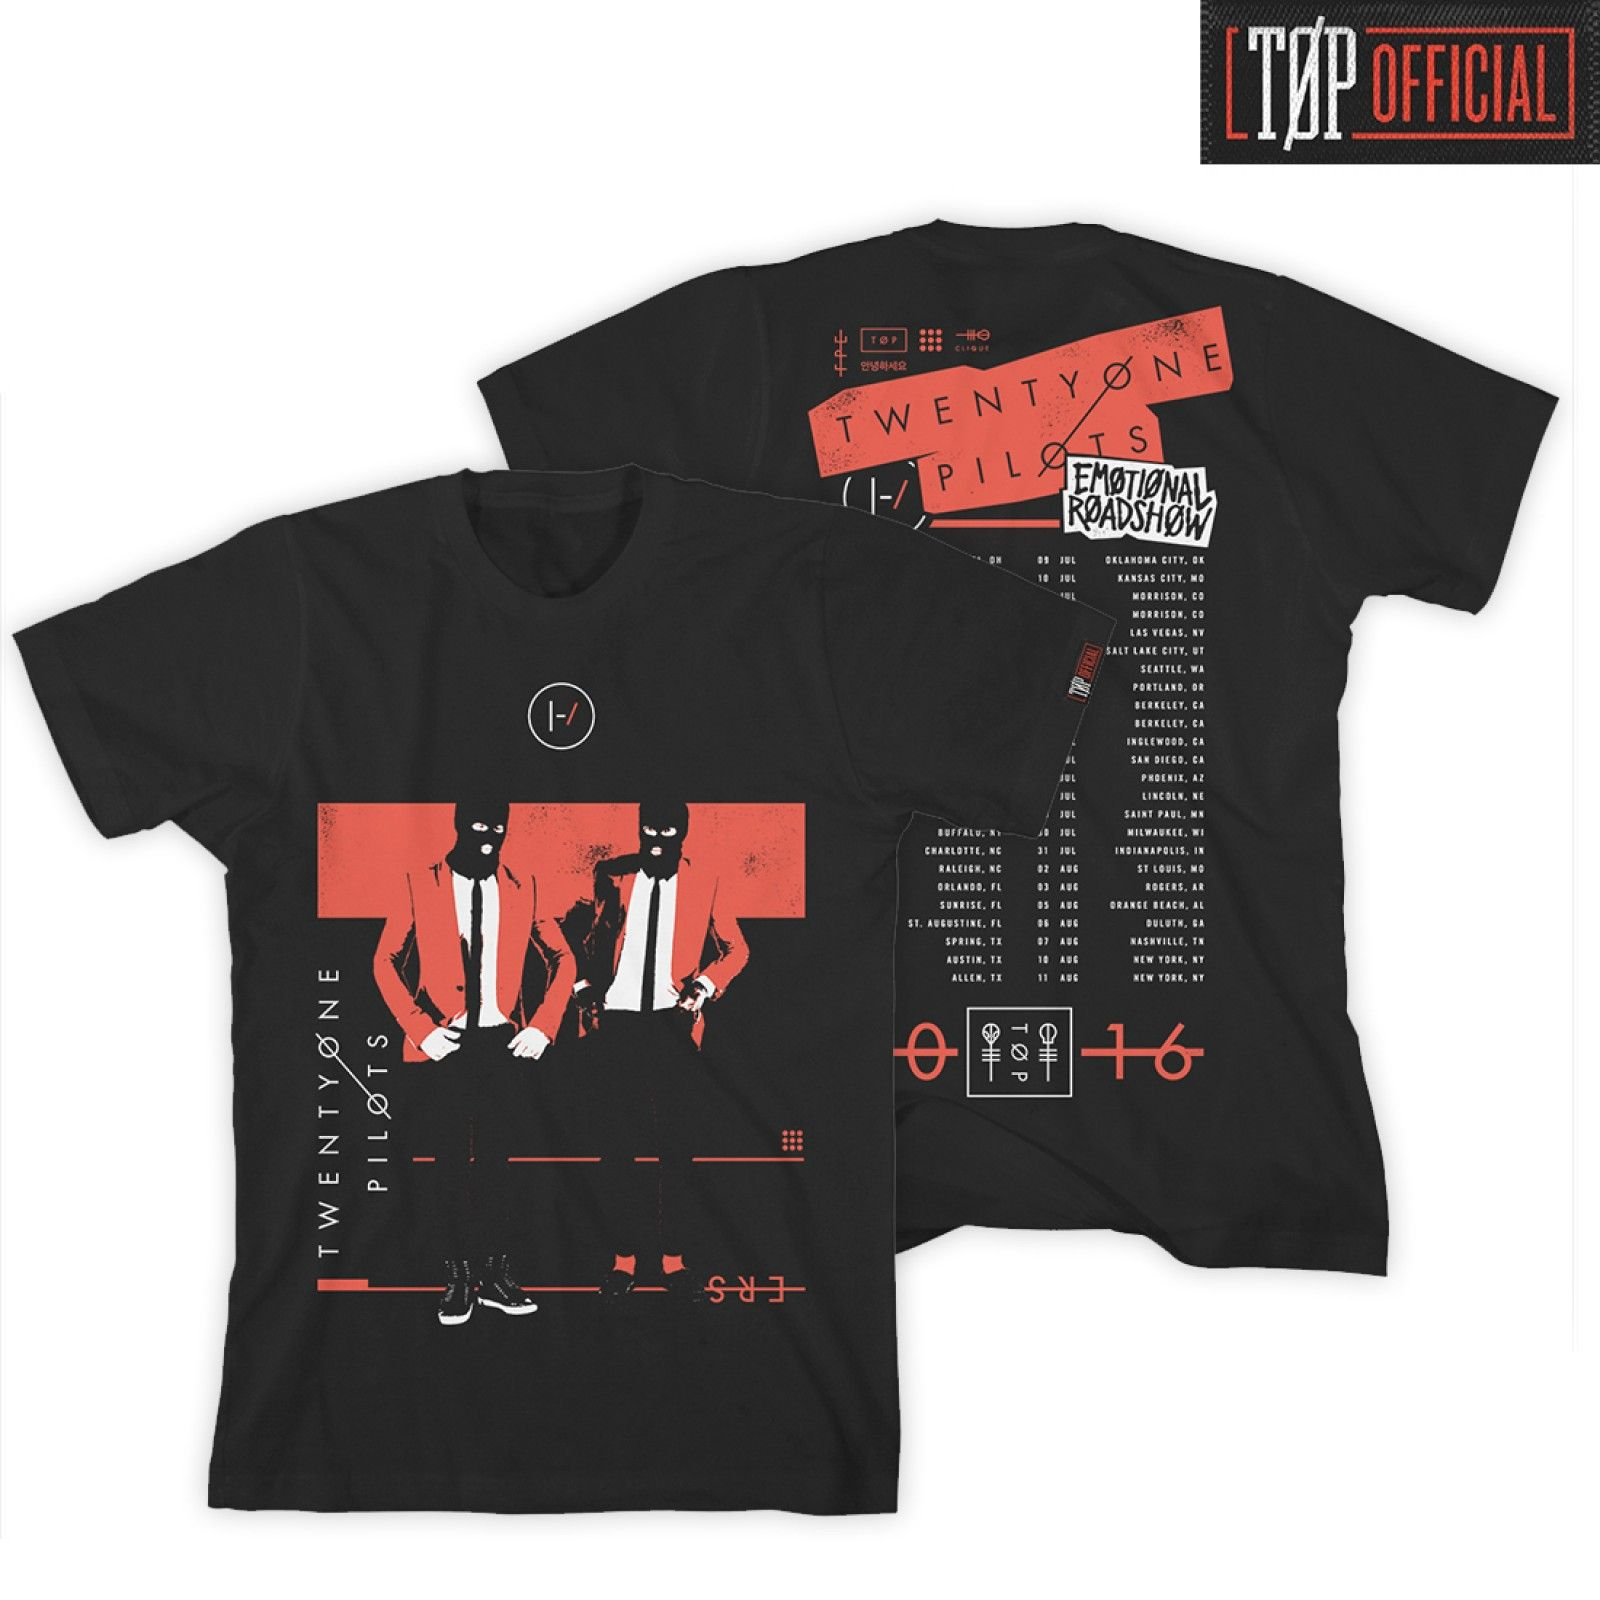 Emotional Road Show Tour T Shirt On Tour Only Twenty One Pilots